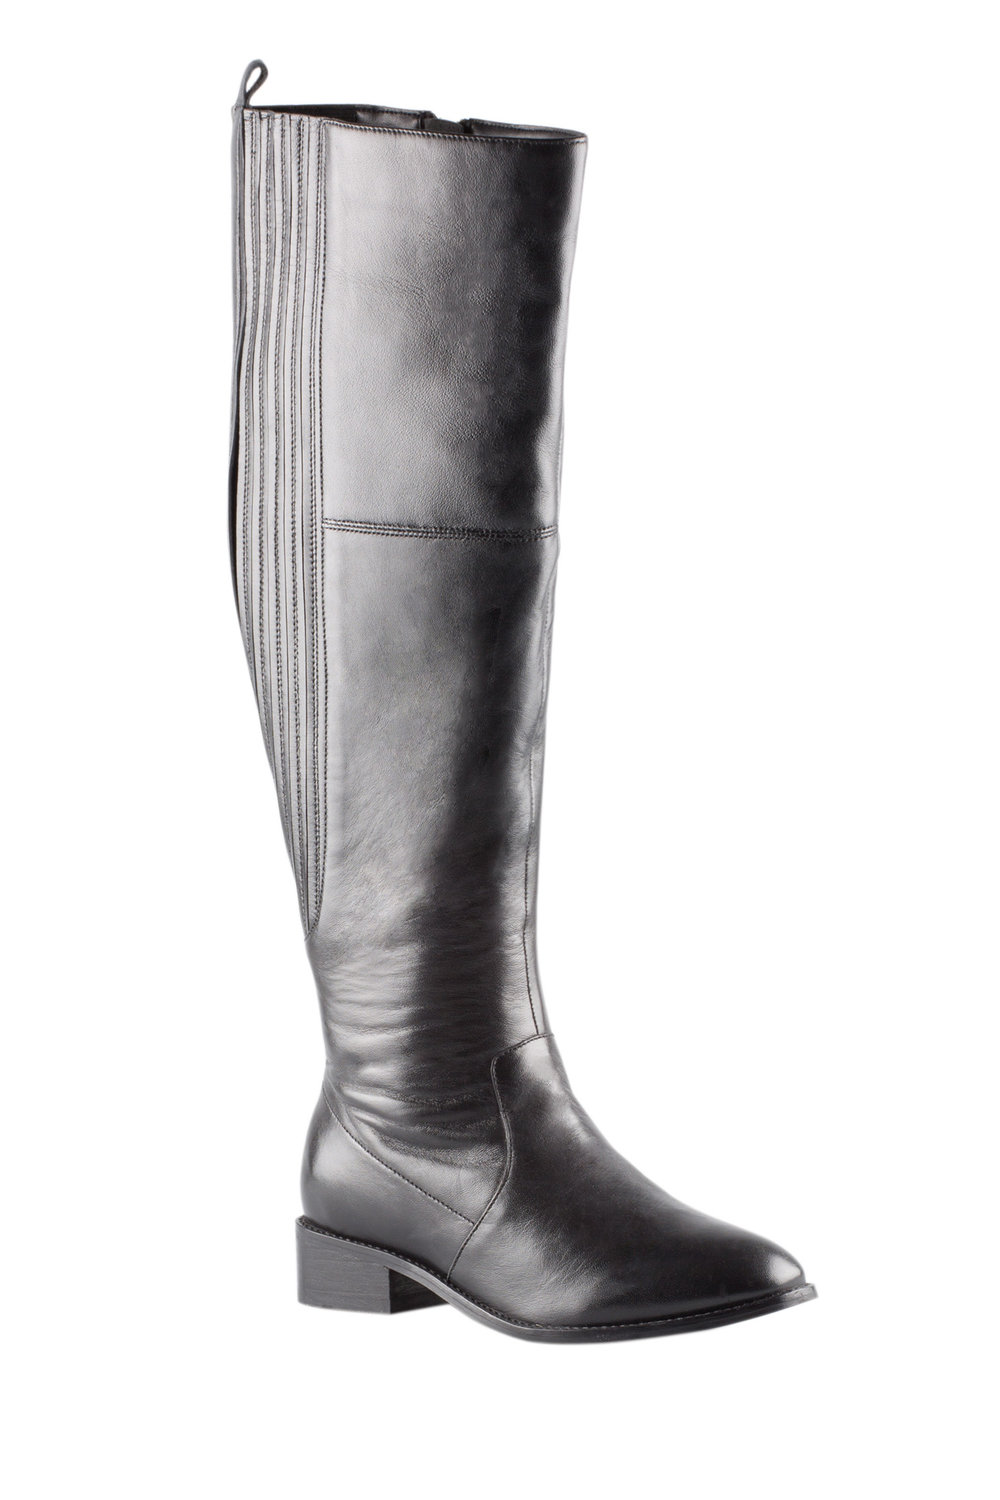 741a7248a563 Wide Fit Hewitt Over The Knee Boot Online | Shop EziBuy